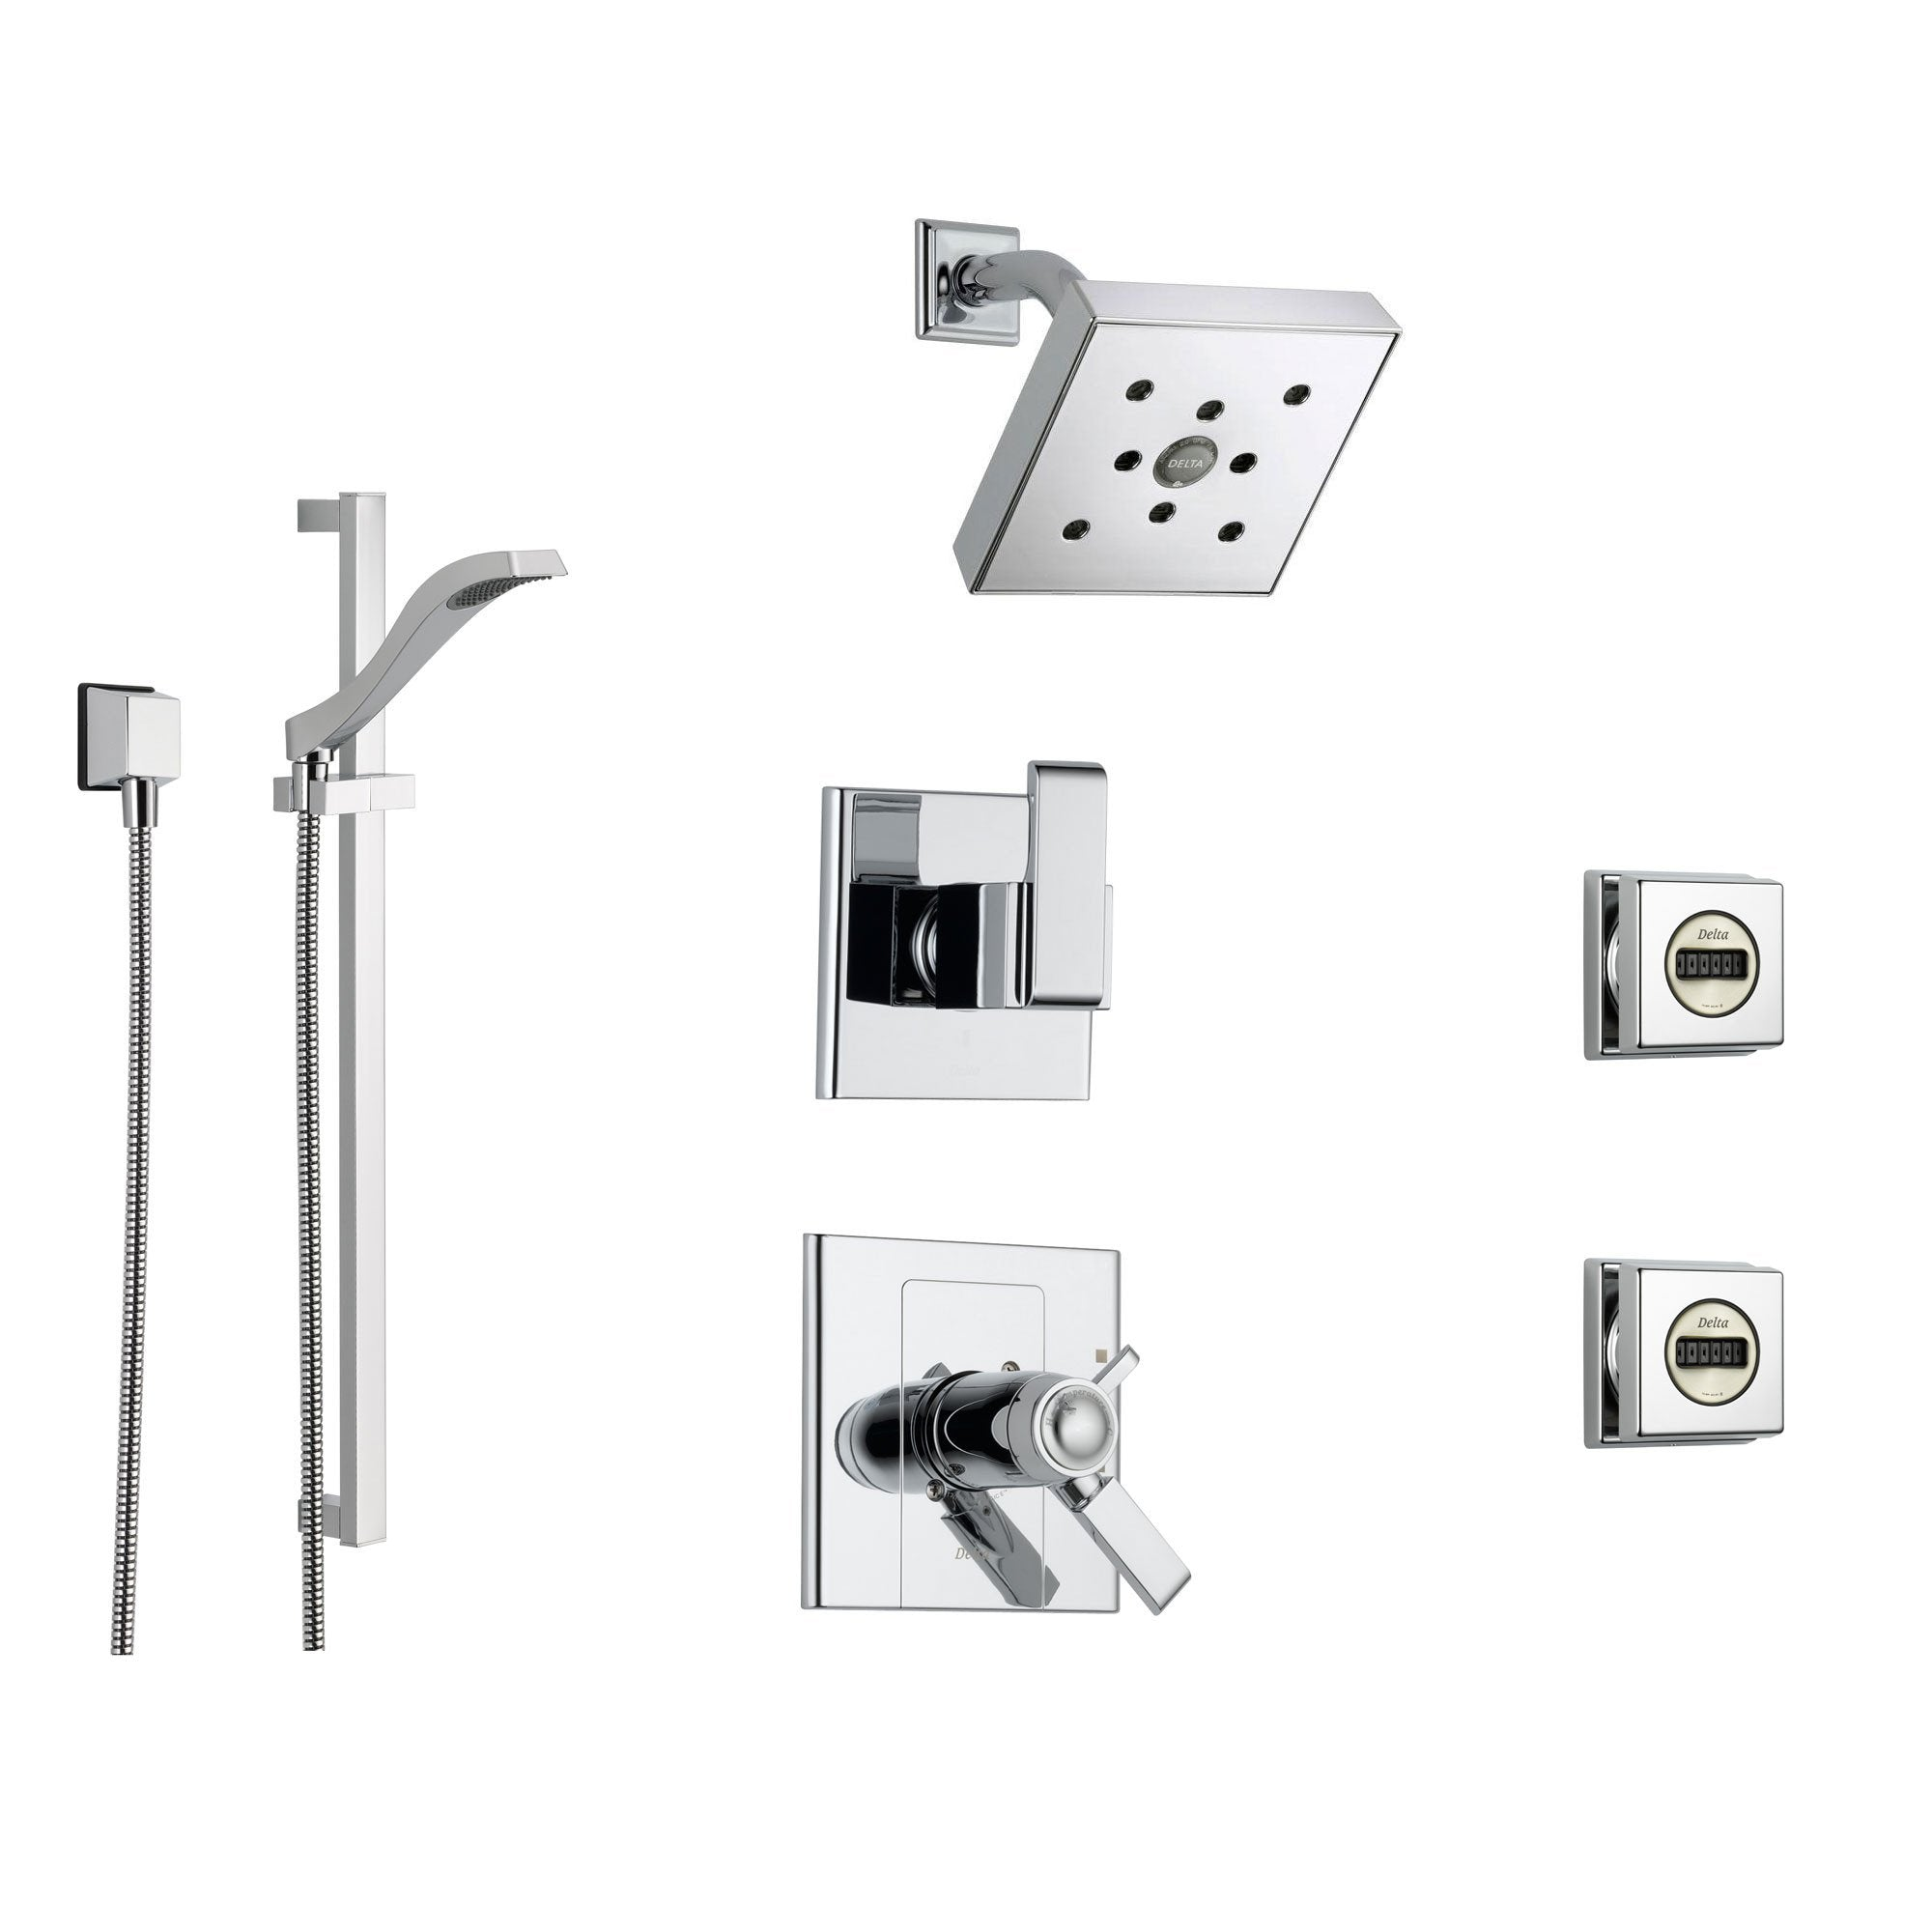 Delta Arzo Chrome Shower System with Thermostatic Shower Handle, 6-setting Diverter, Modern Square Showerhead, Handheld Shower, and 2 Body Sprays SS17T8694